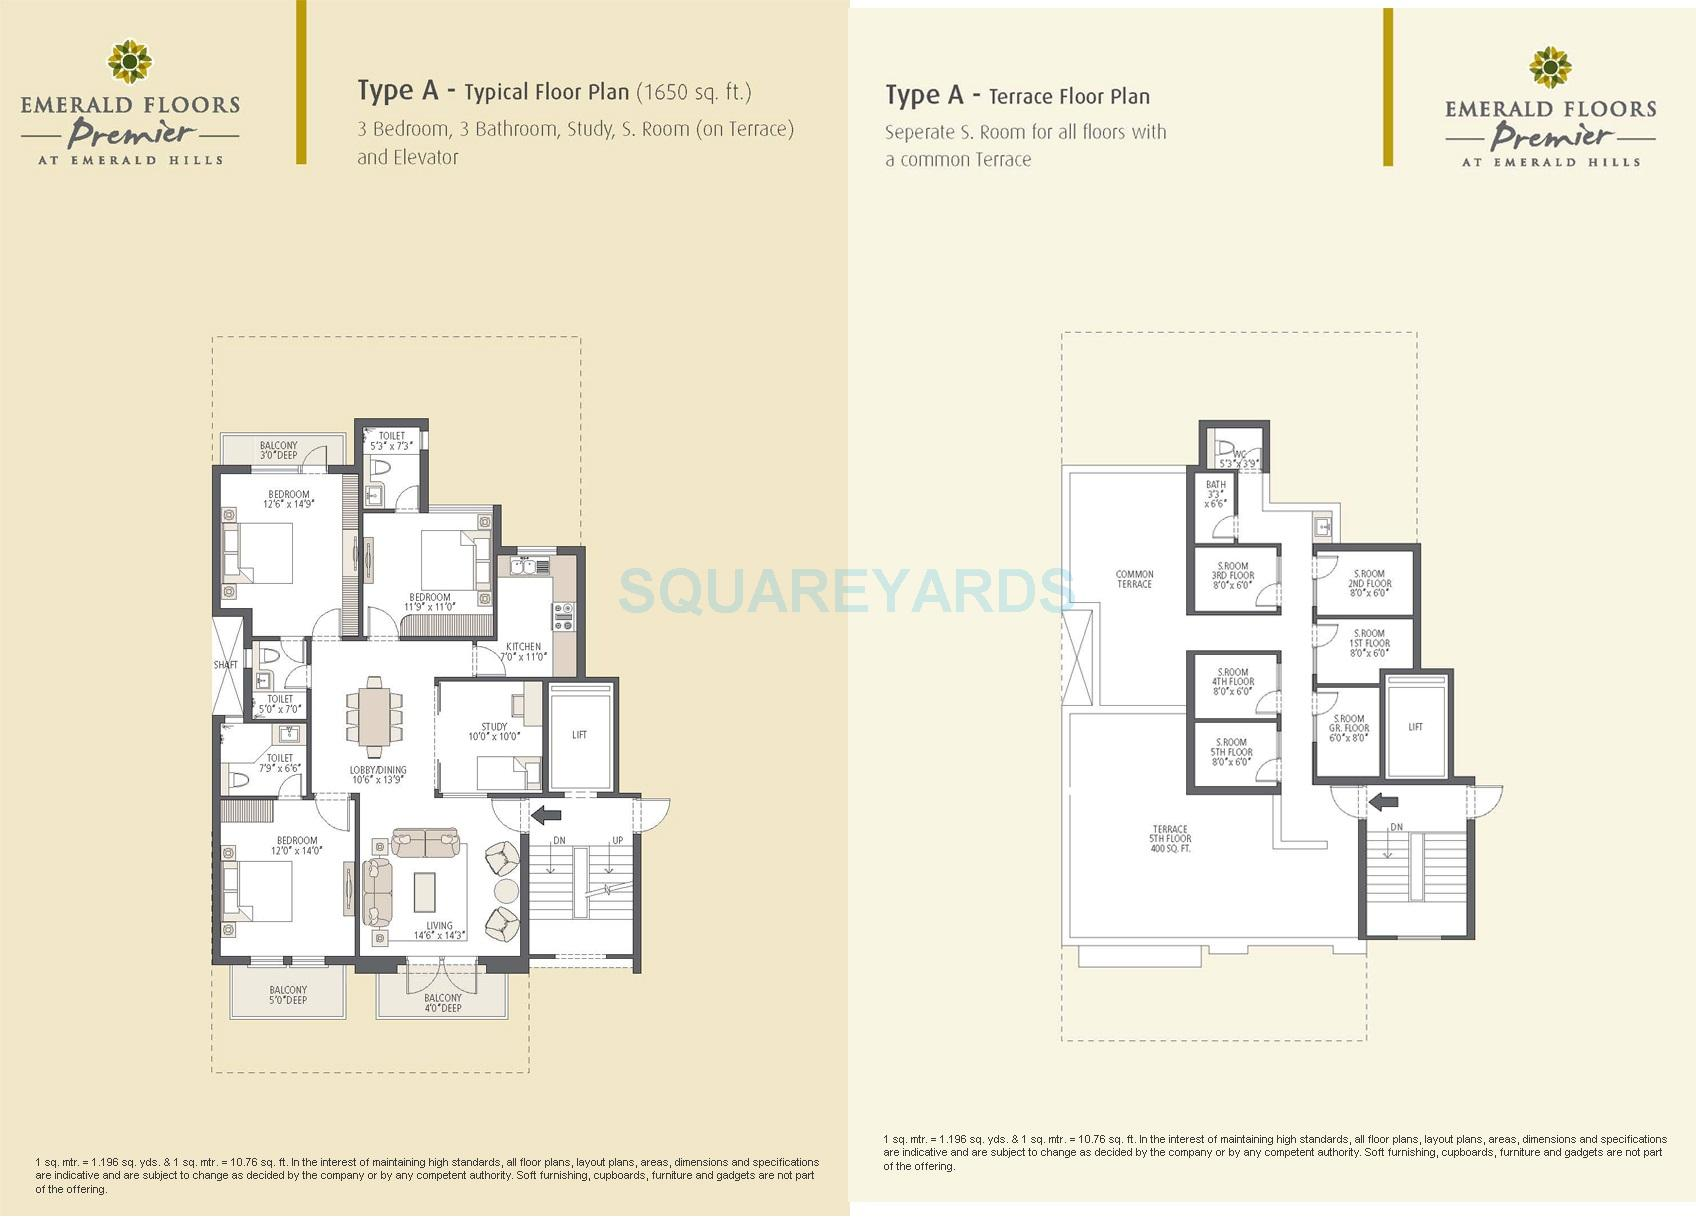 emaar mgf emerald floors premier builder floor 5th terrc 3bhk typea 1650sqft 1